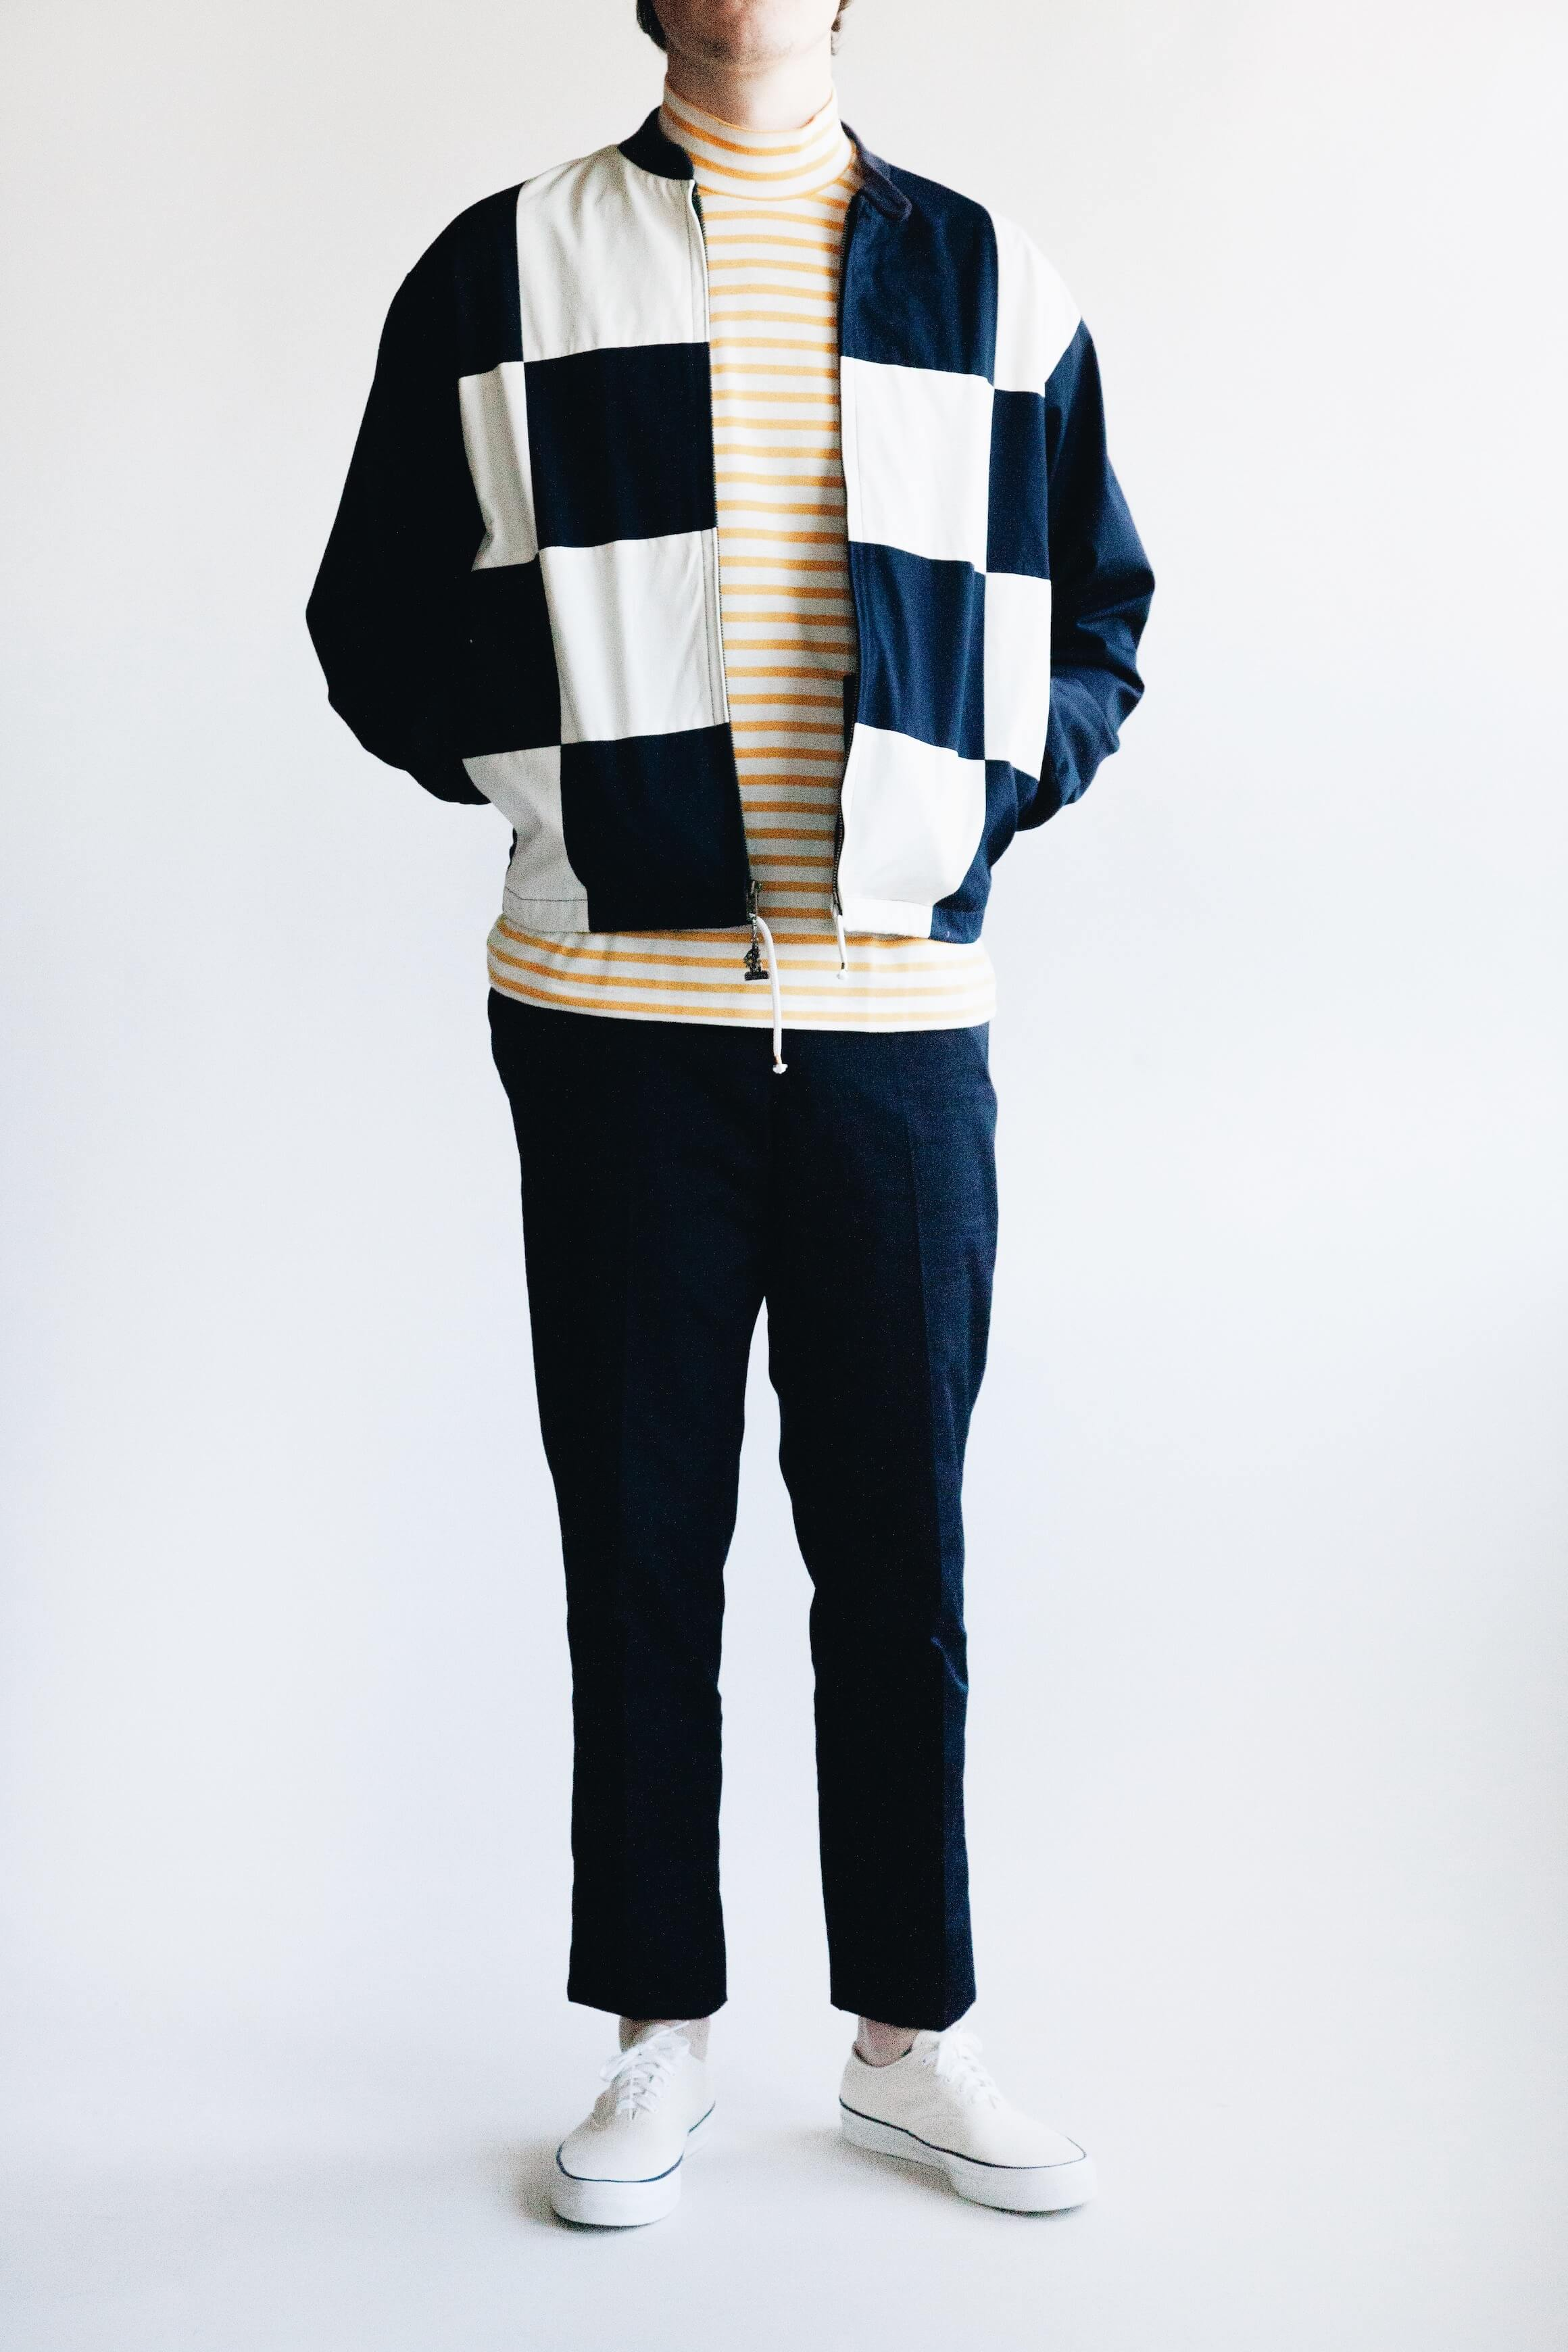 mighty mac boat jacket, anatomica ss mock neck tee, anatomica trim fit pant and wakouwa wak deck shoe on body